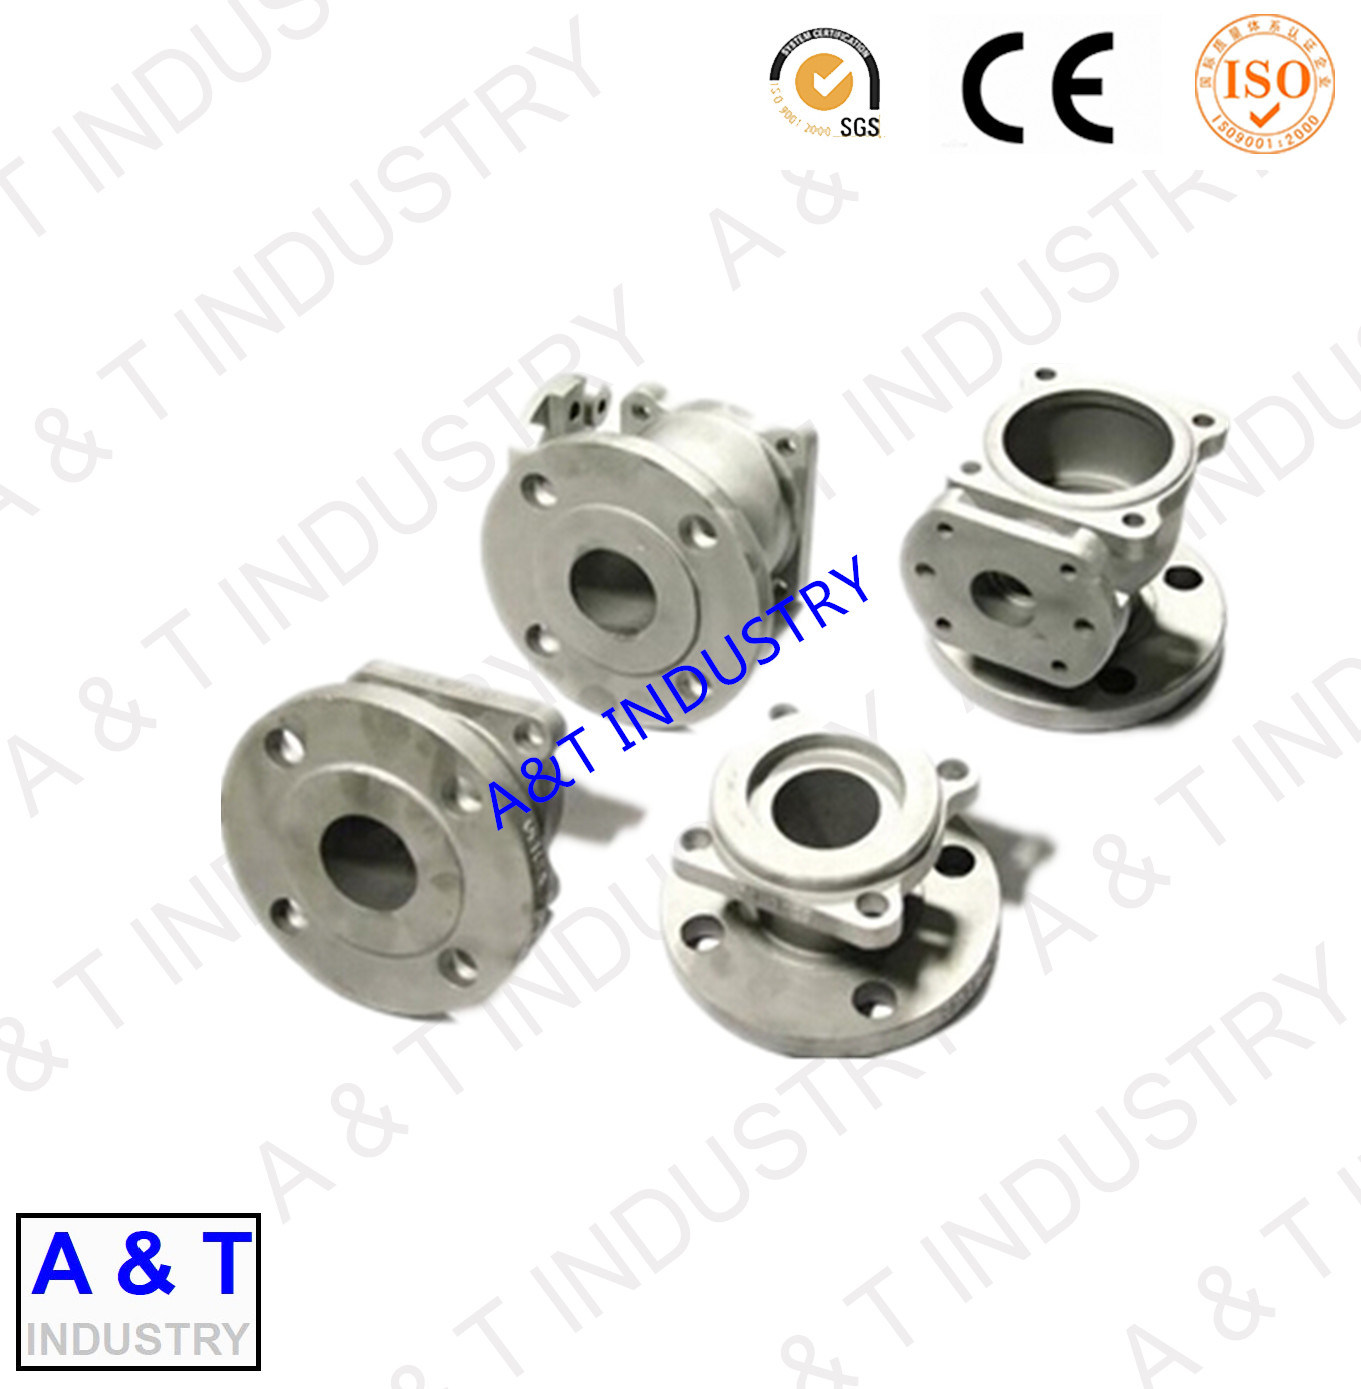 Stainless Steel Investment Casting and Lost Wax Casting Product